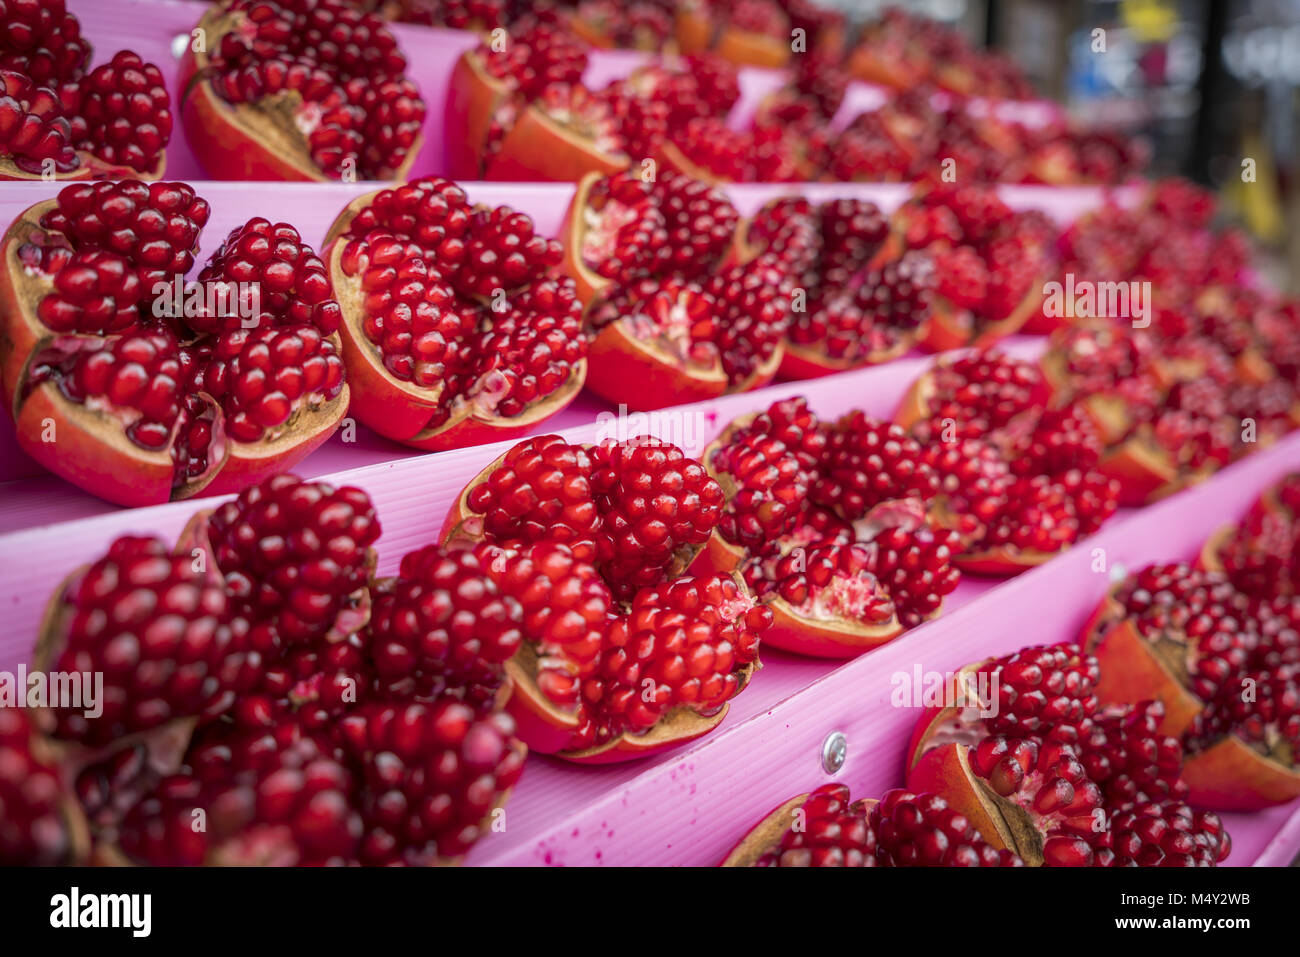 Lots of ripe pomegranate fruit, selected focus - Stock Image